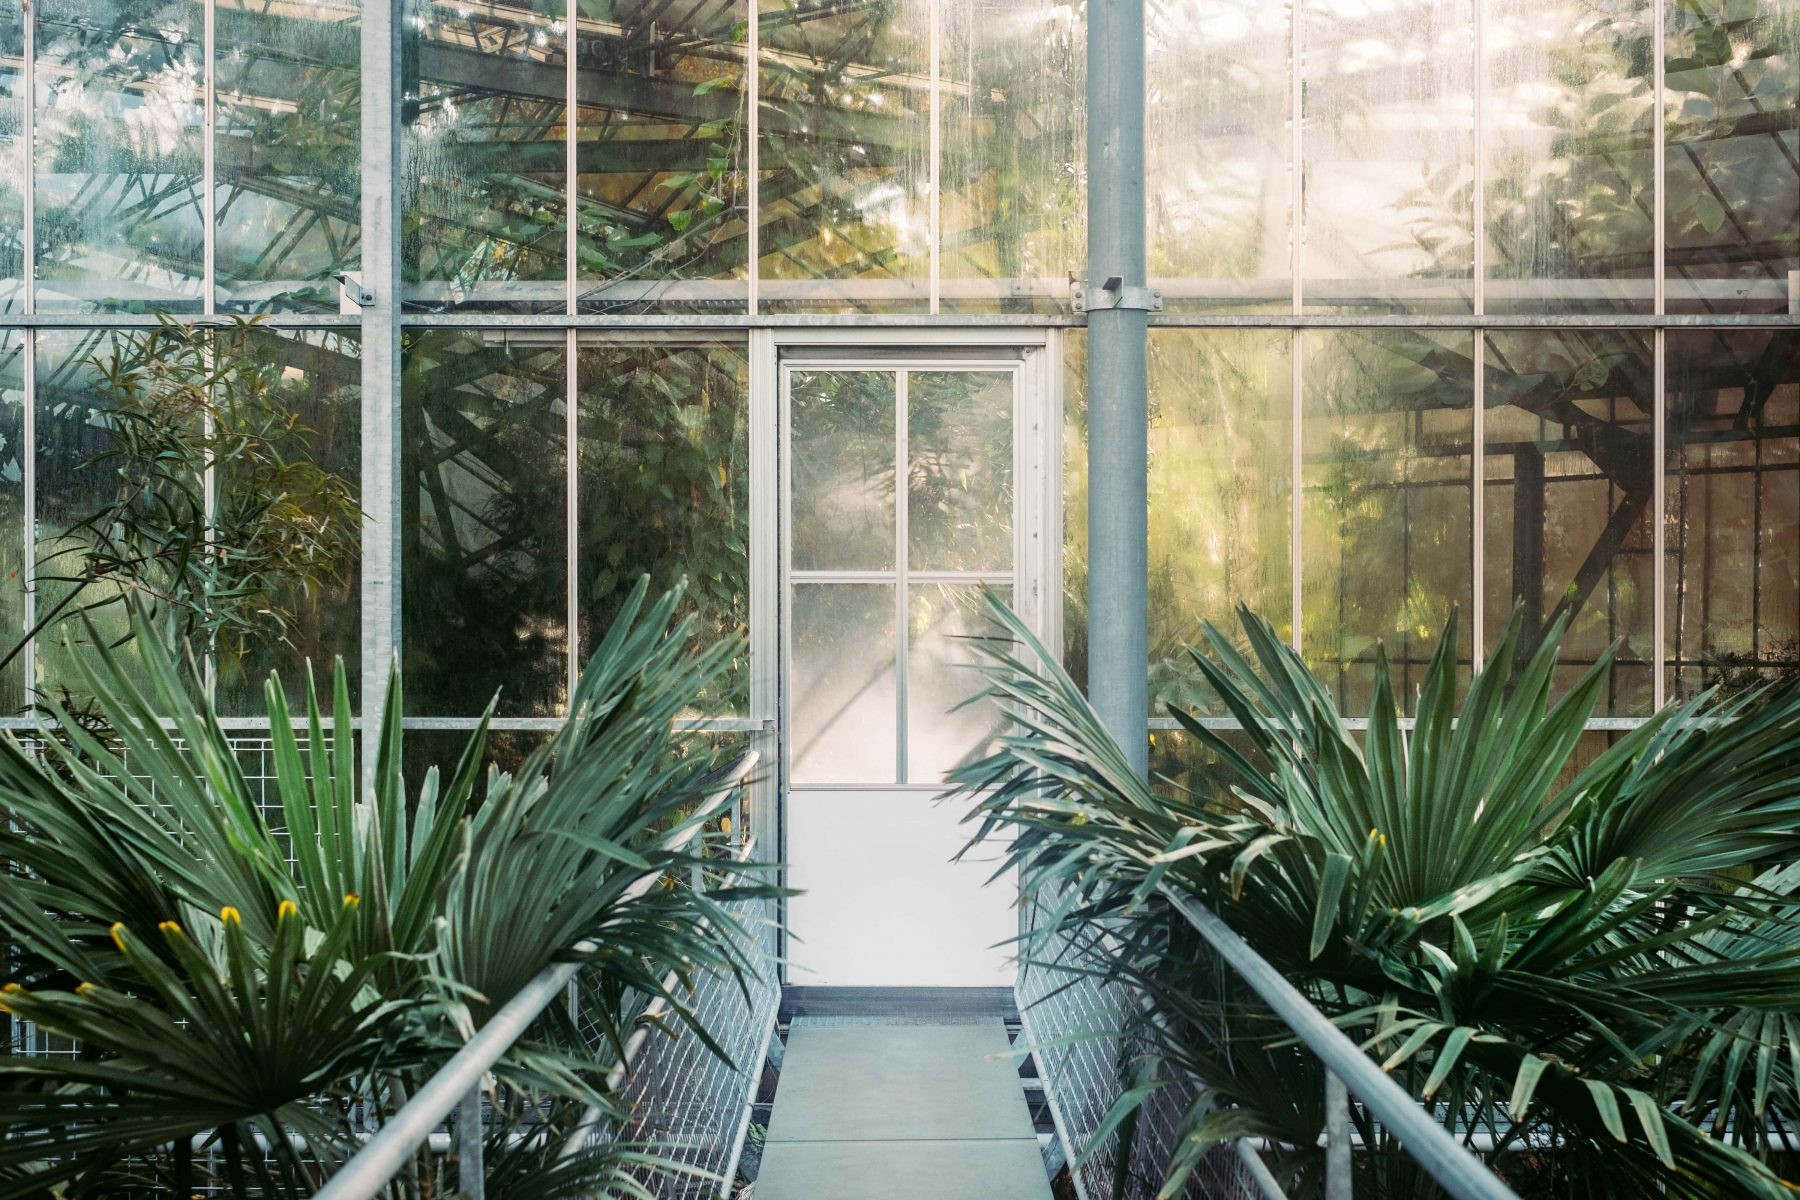 photo of a green conservatory with glass walls and door